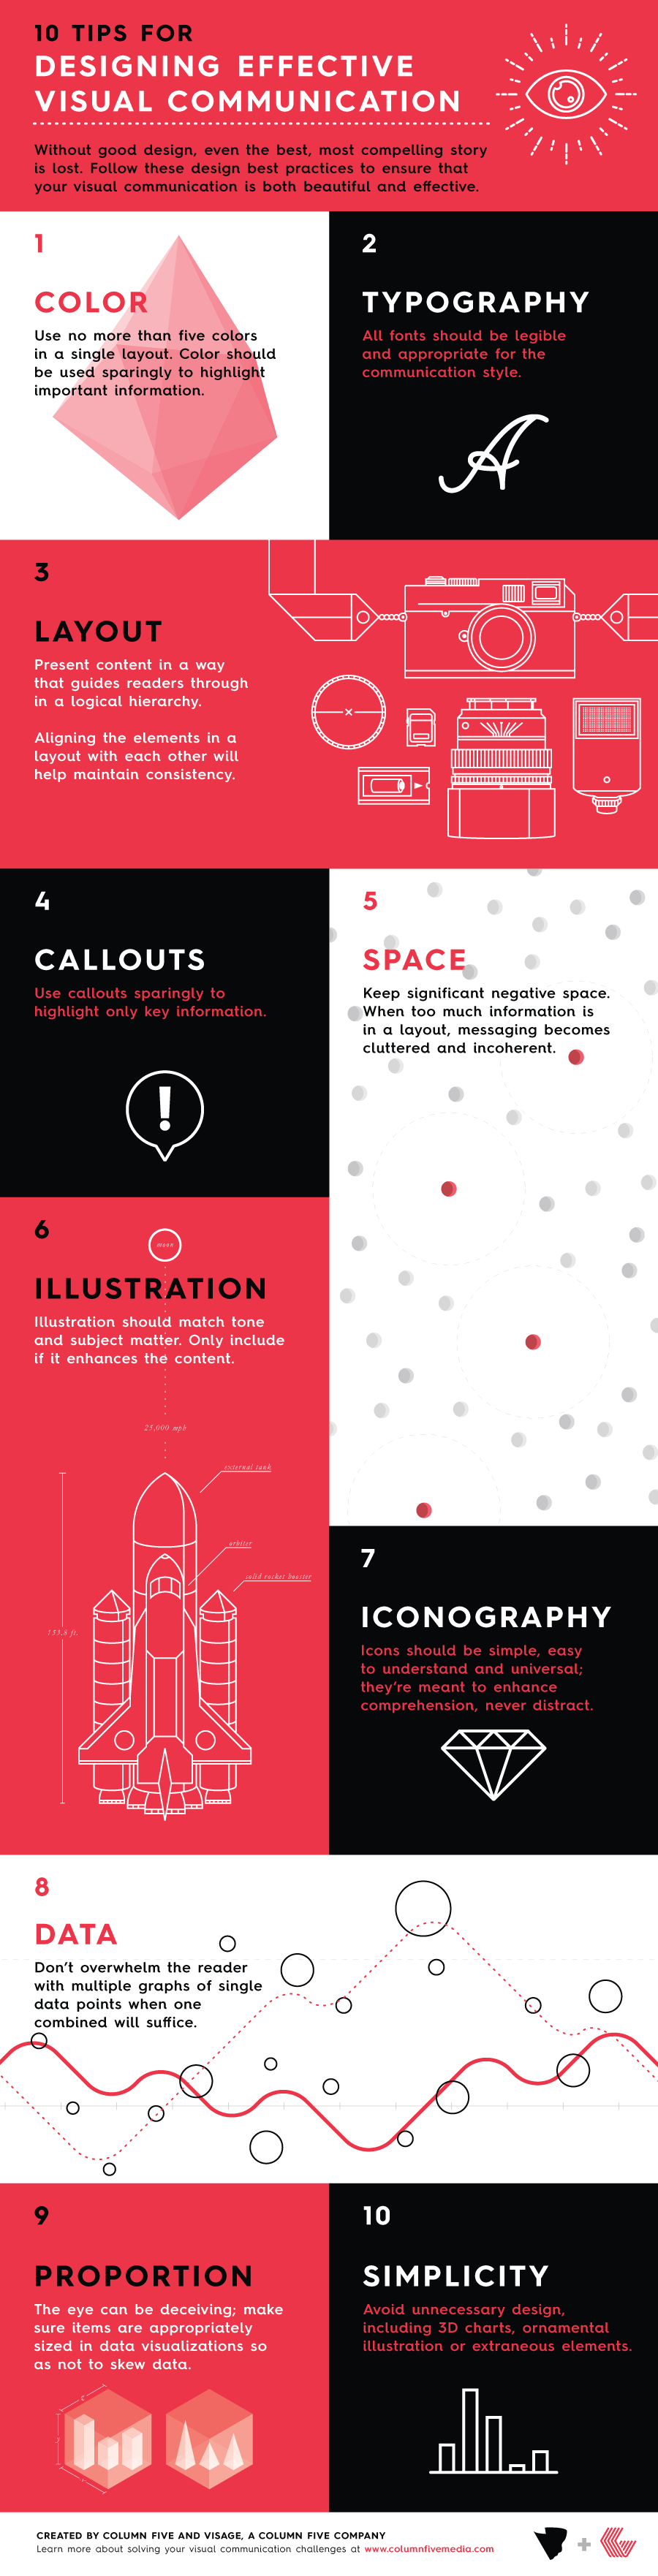 How to design effectively with visual communication